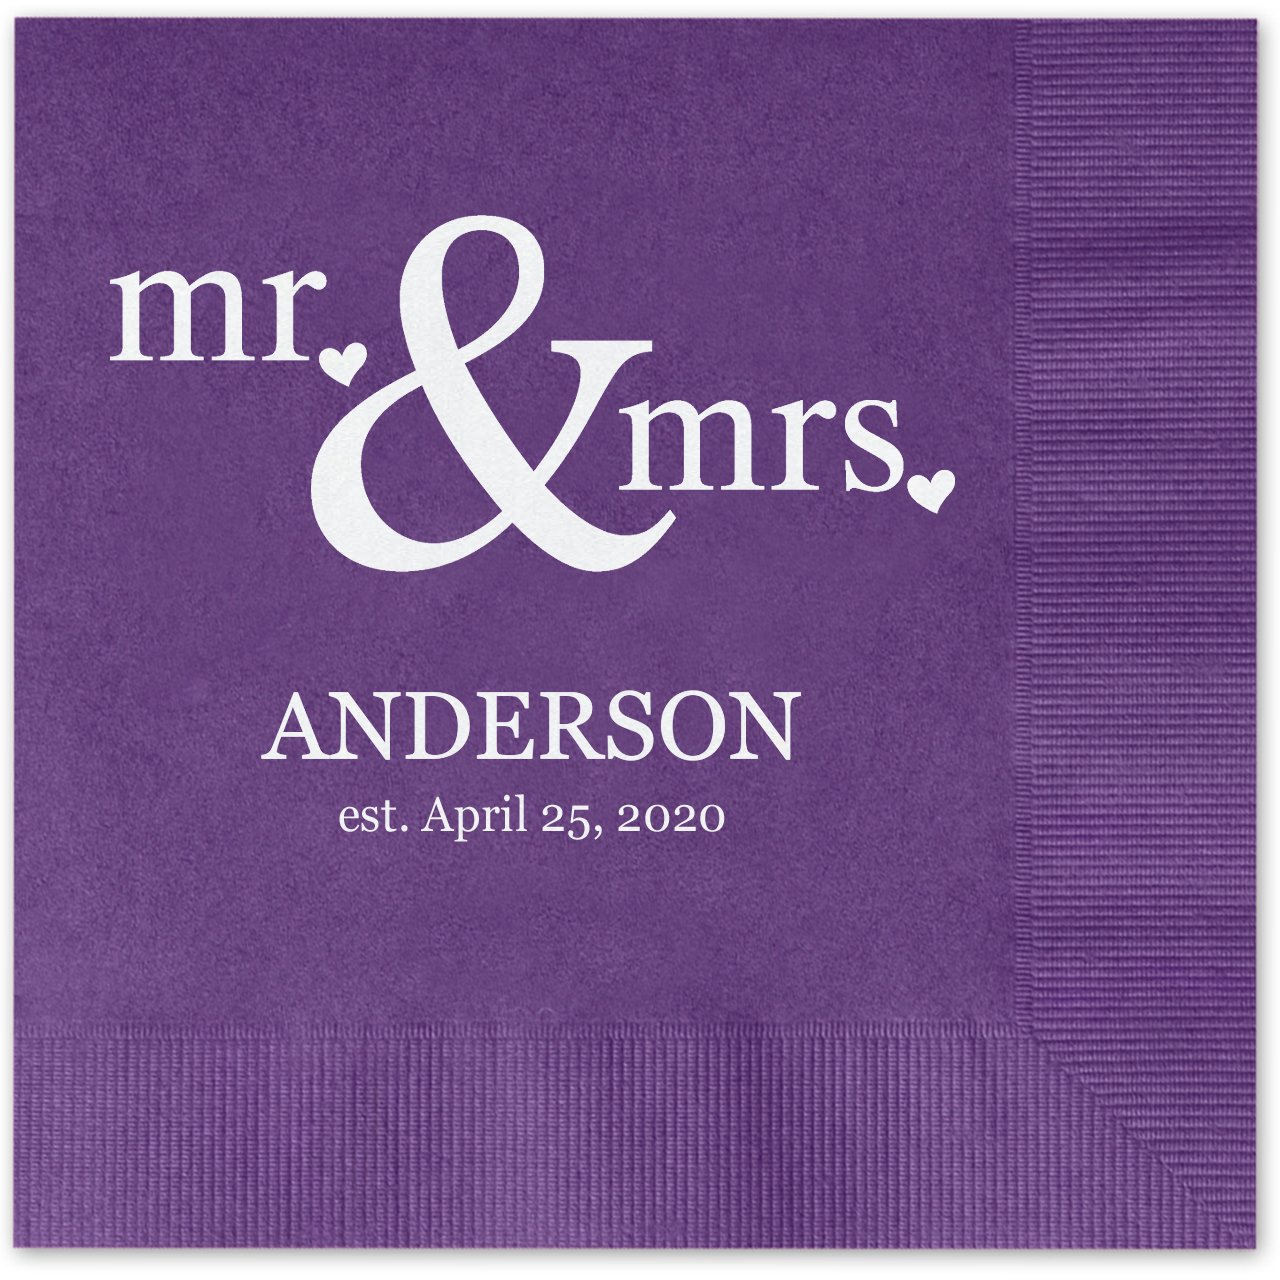 Mr & Mrs Hearts Personalized Beverage Cocktail Napkins - 100 Custom Printed Violet Purple Paper Napkins with choice of foil